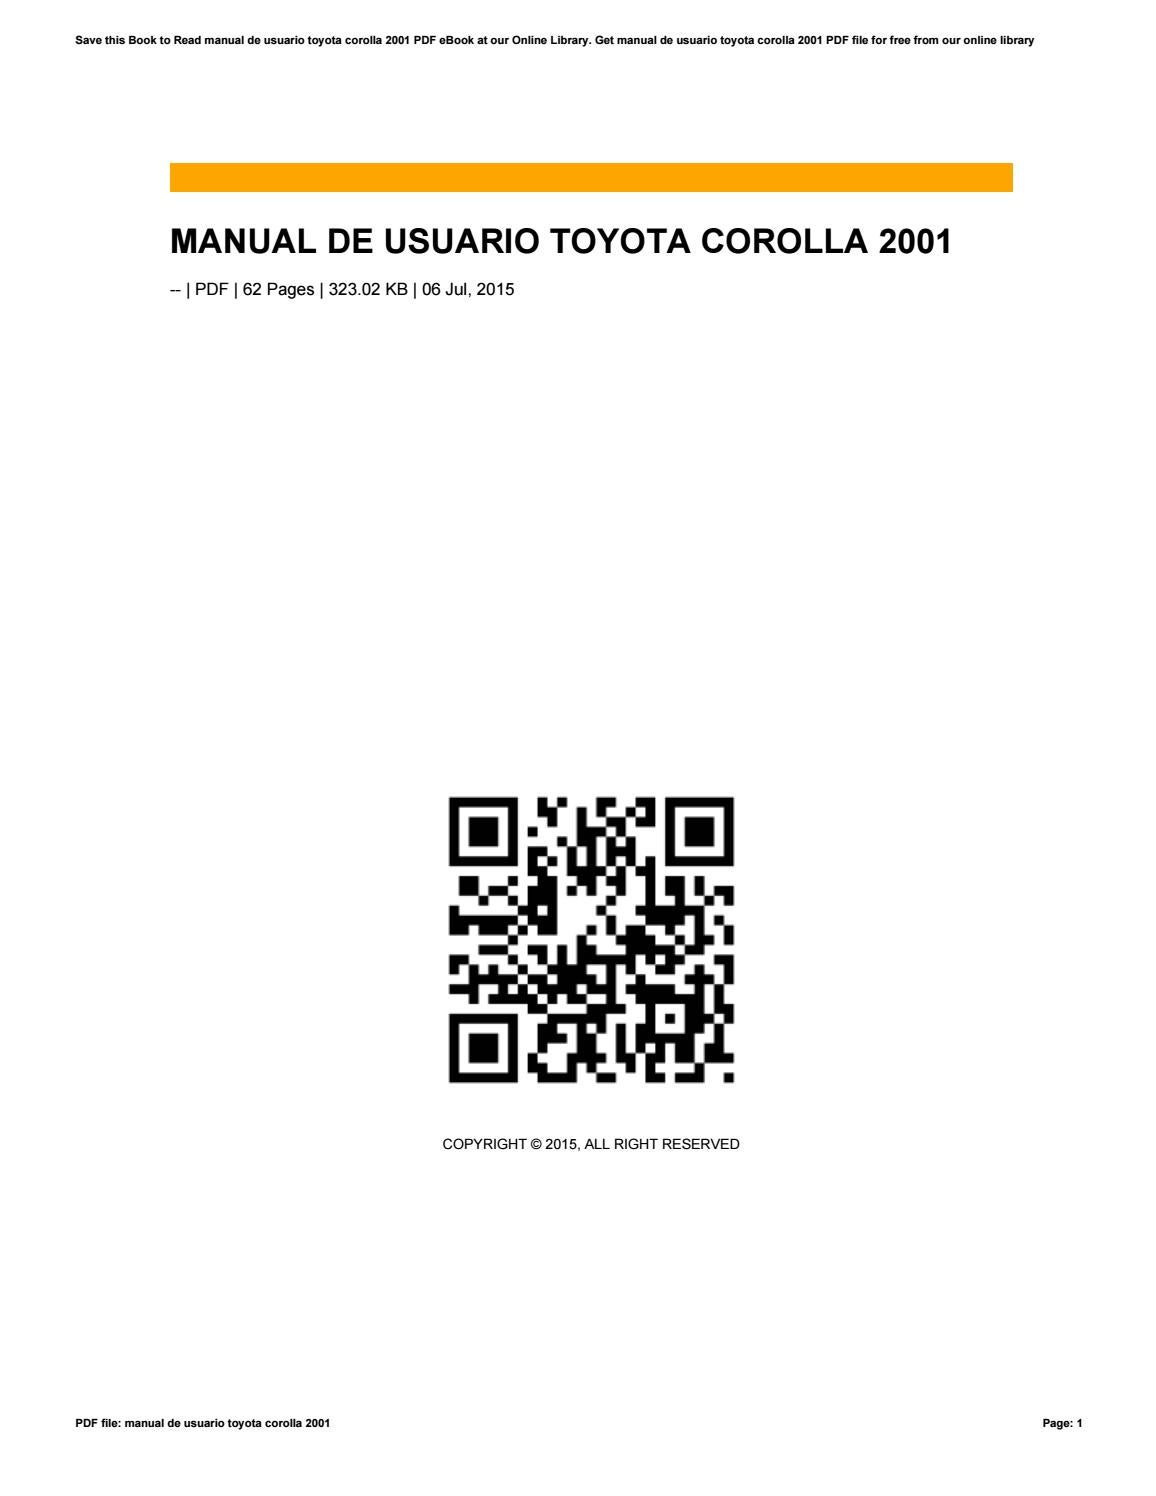 Manual de usuario toyota corolla 2001 by kasfeia89jsdua